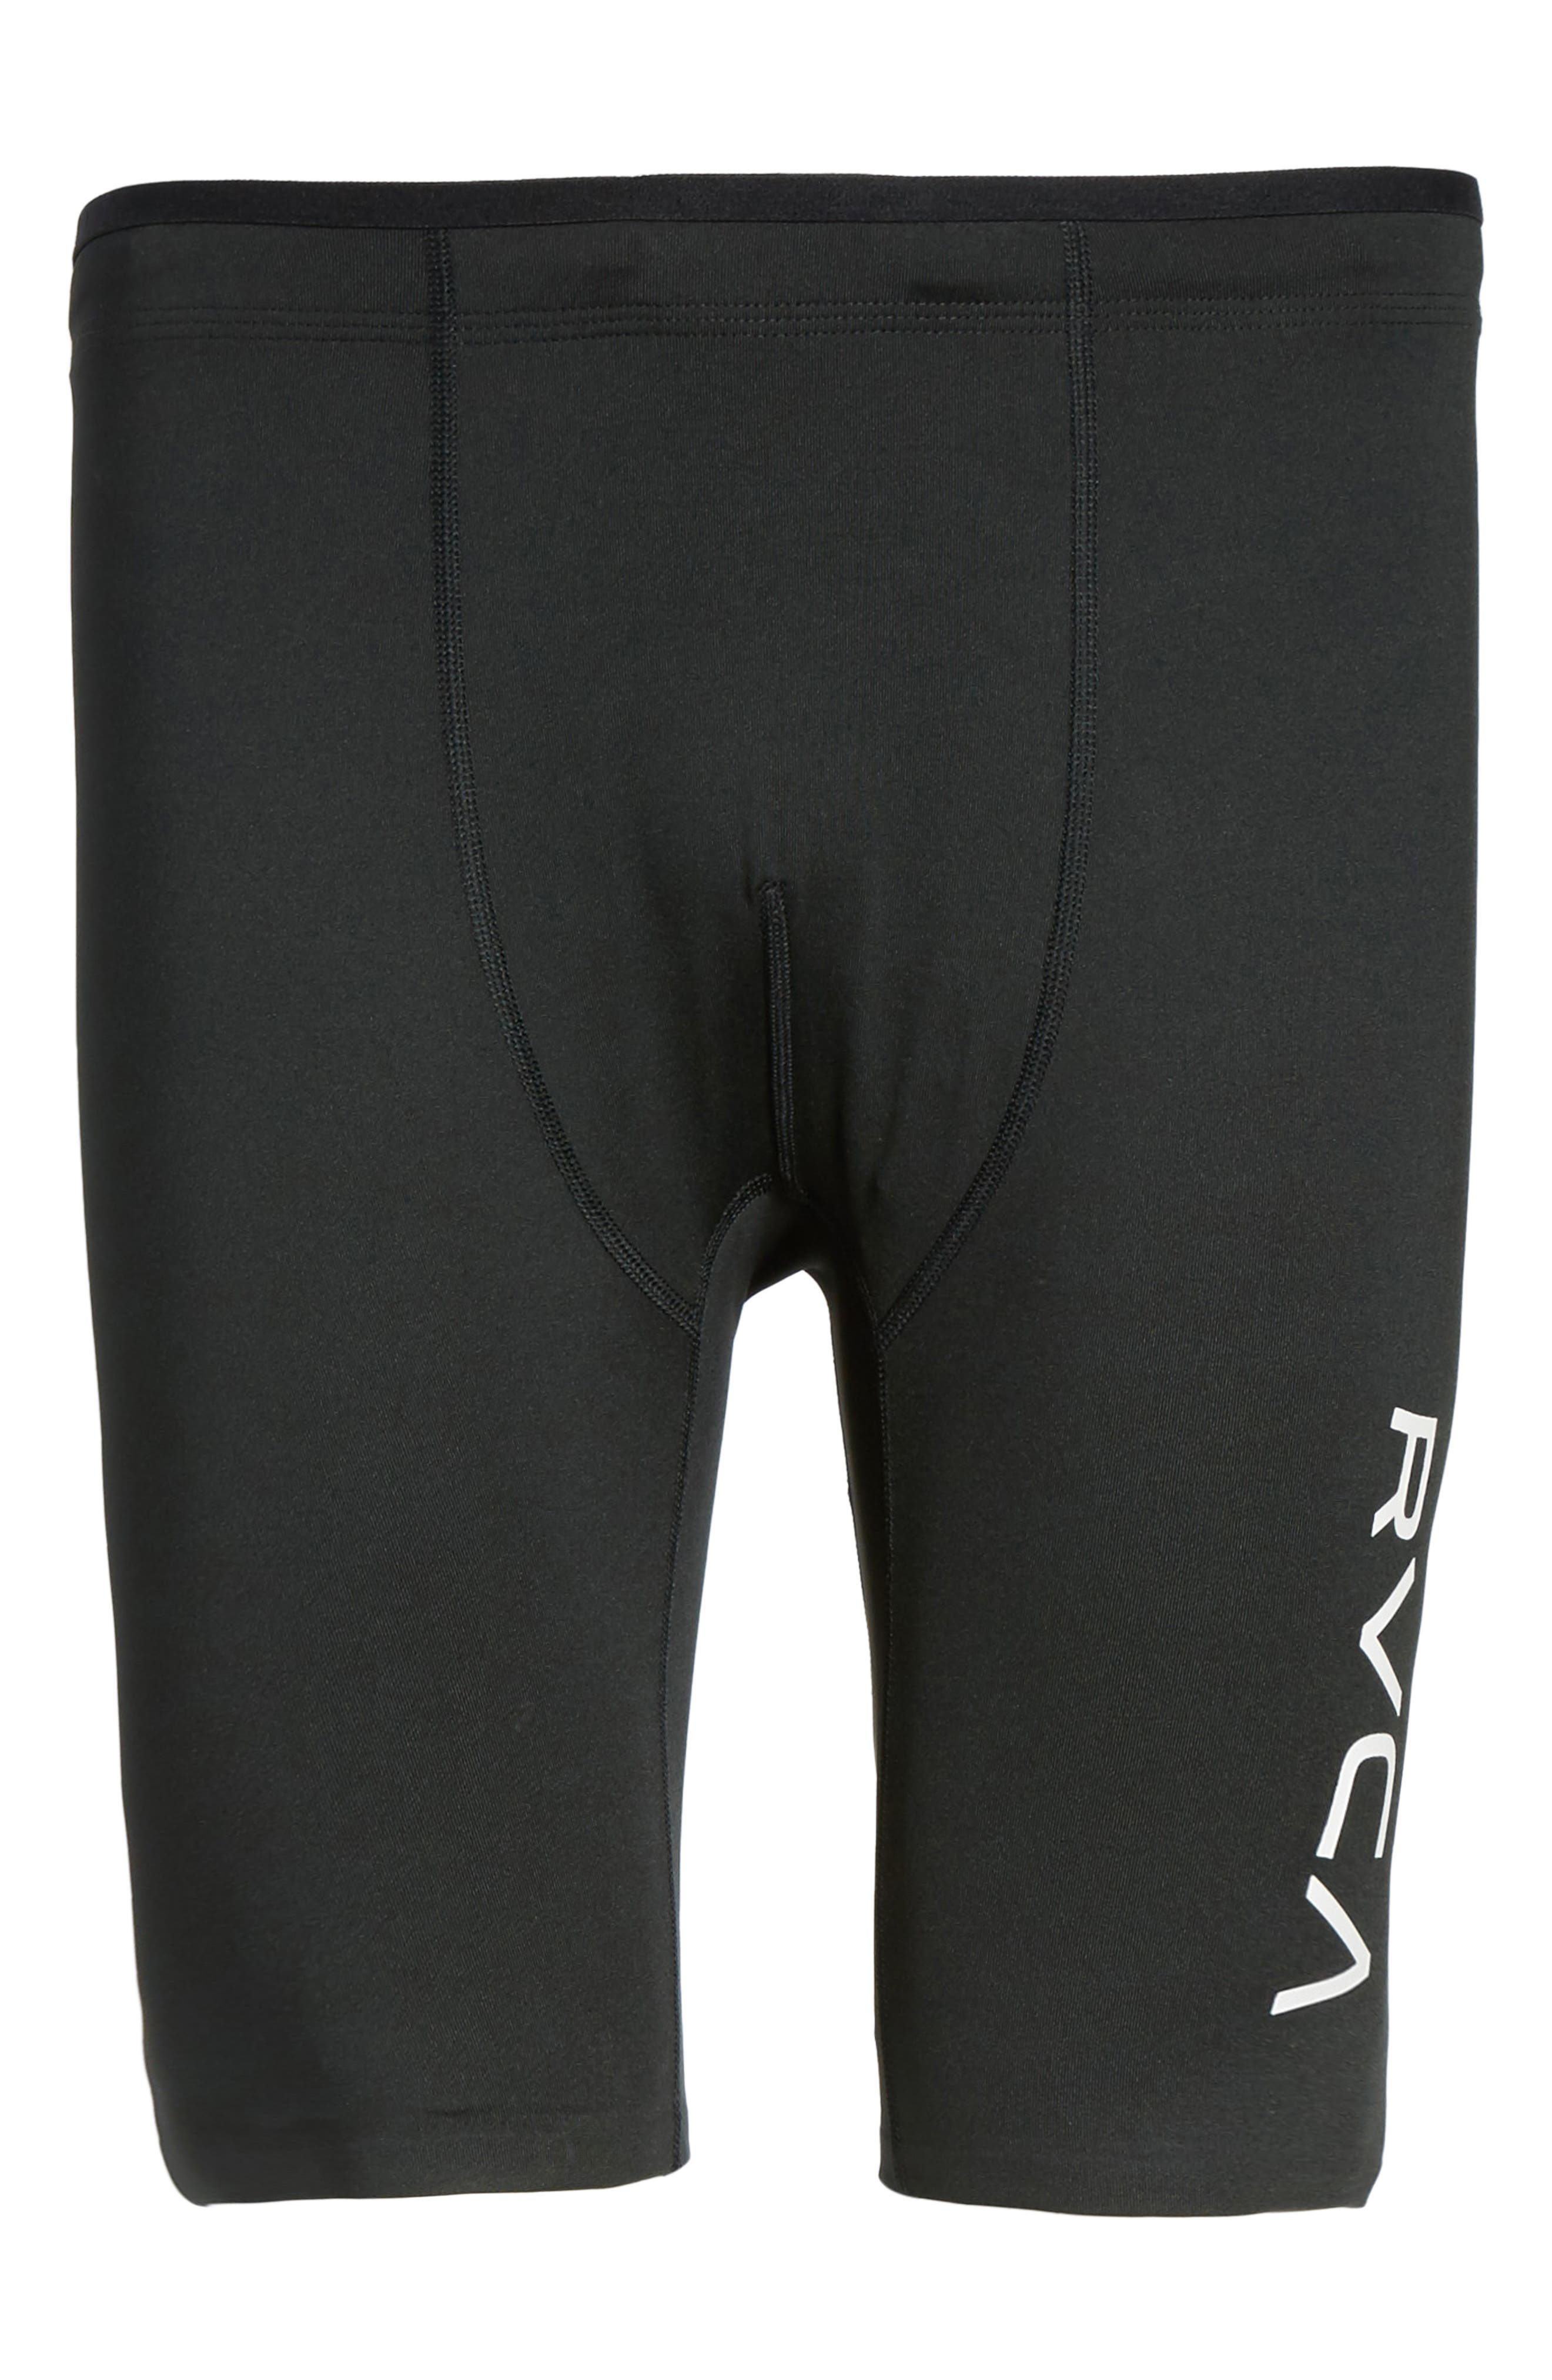 Sport Compression Shorts,                             Alternate thumbnail 6, color,                             001